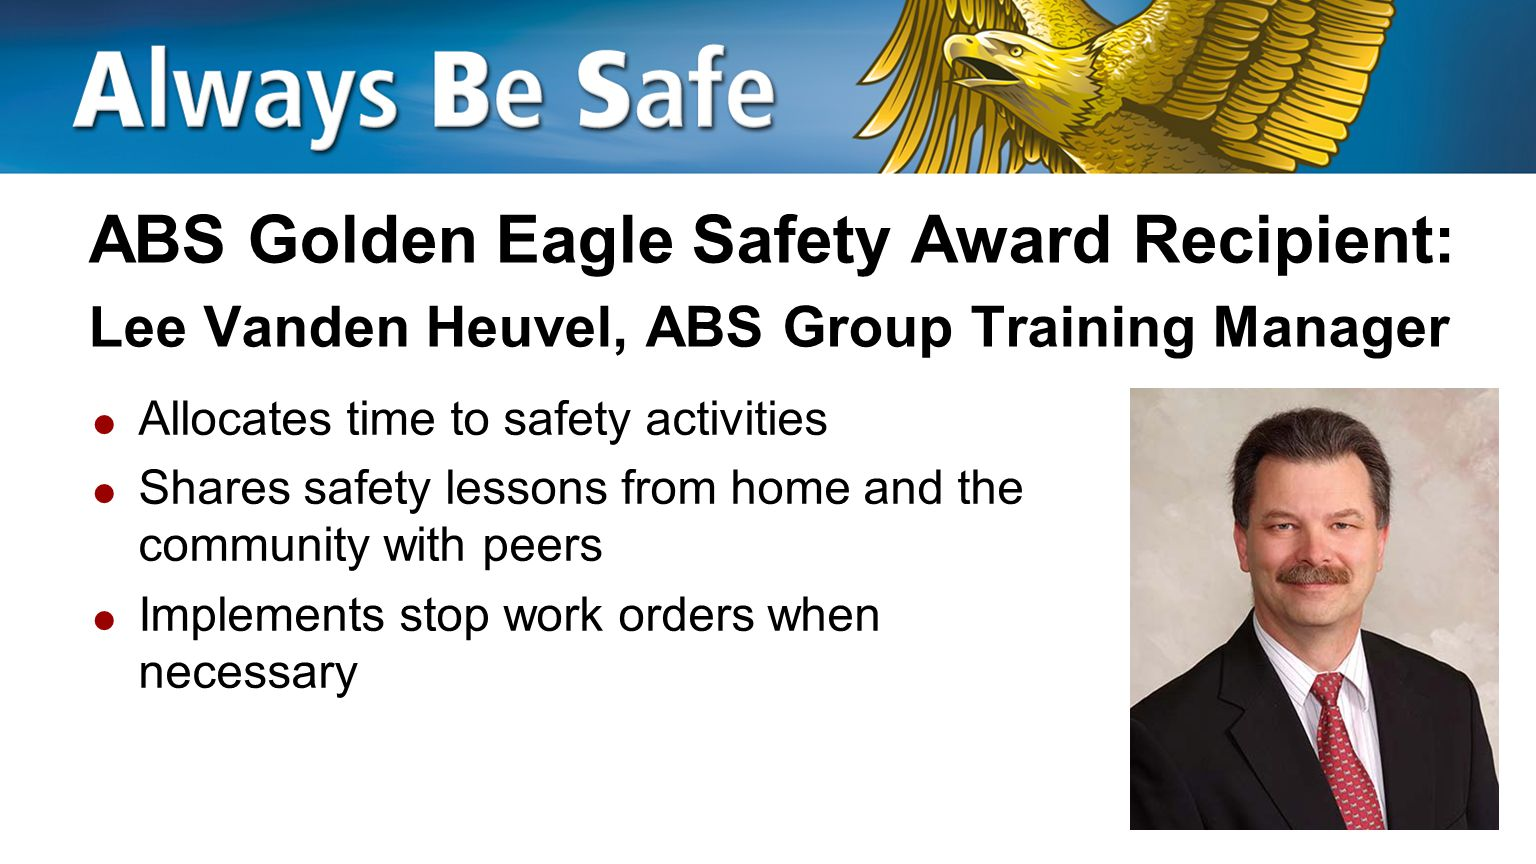 ABS Golden Eagle Safety Award Recipient: Lee Vanden Heuvel, ABS Group Training Manager